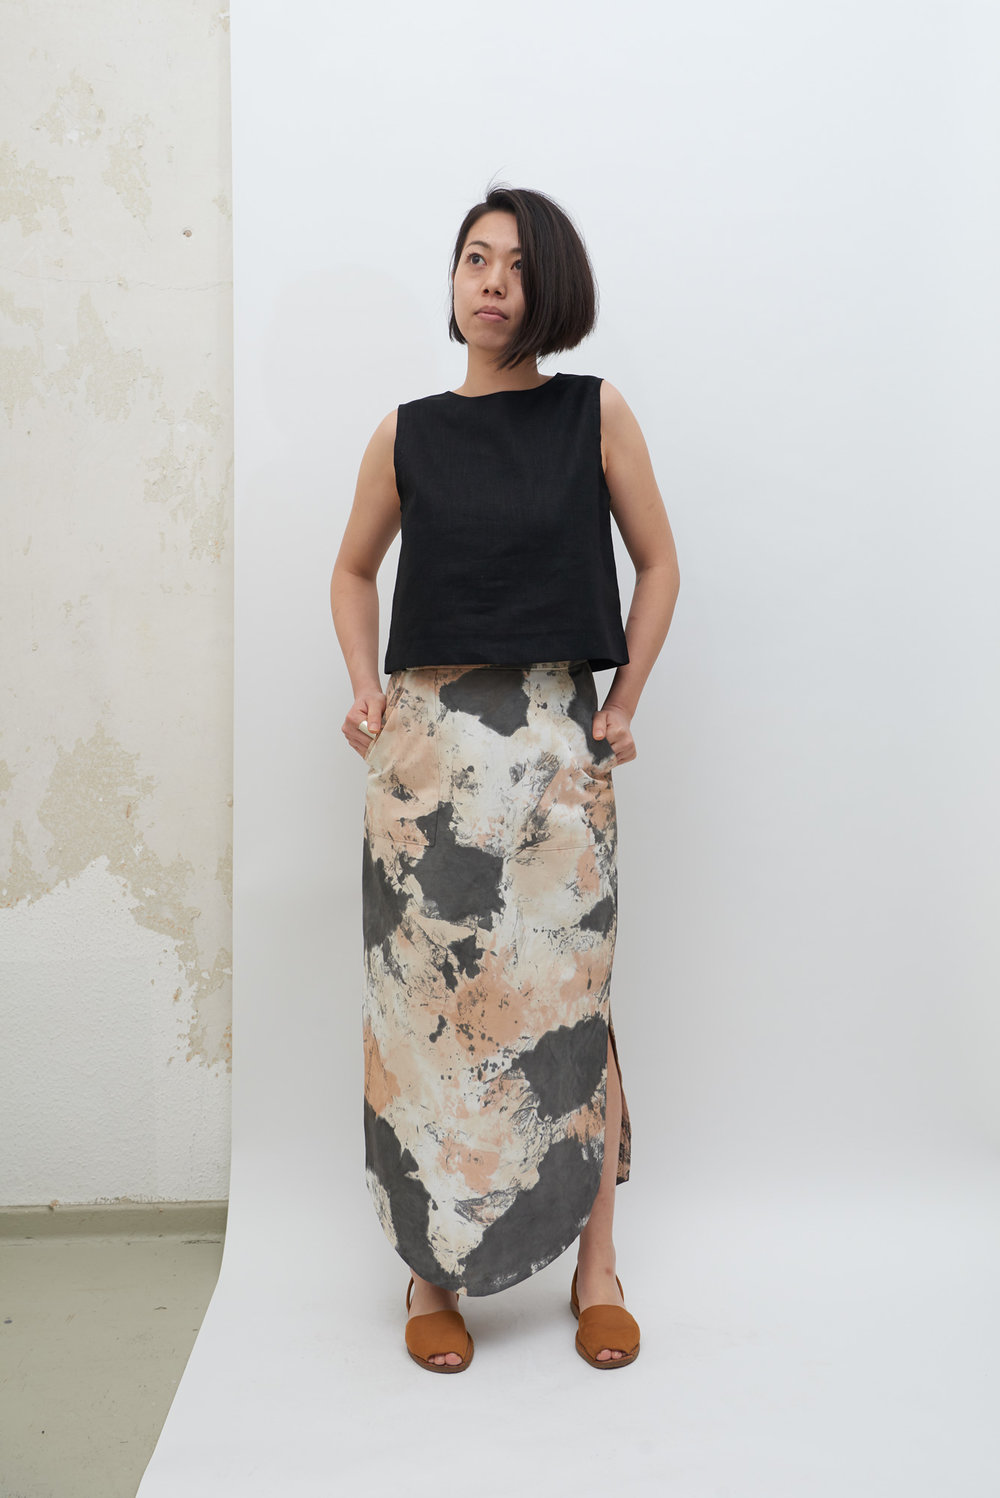 Poketto Skirt - Tea Stains